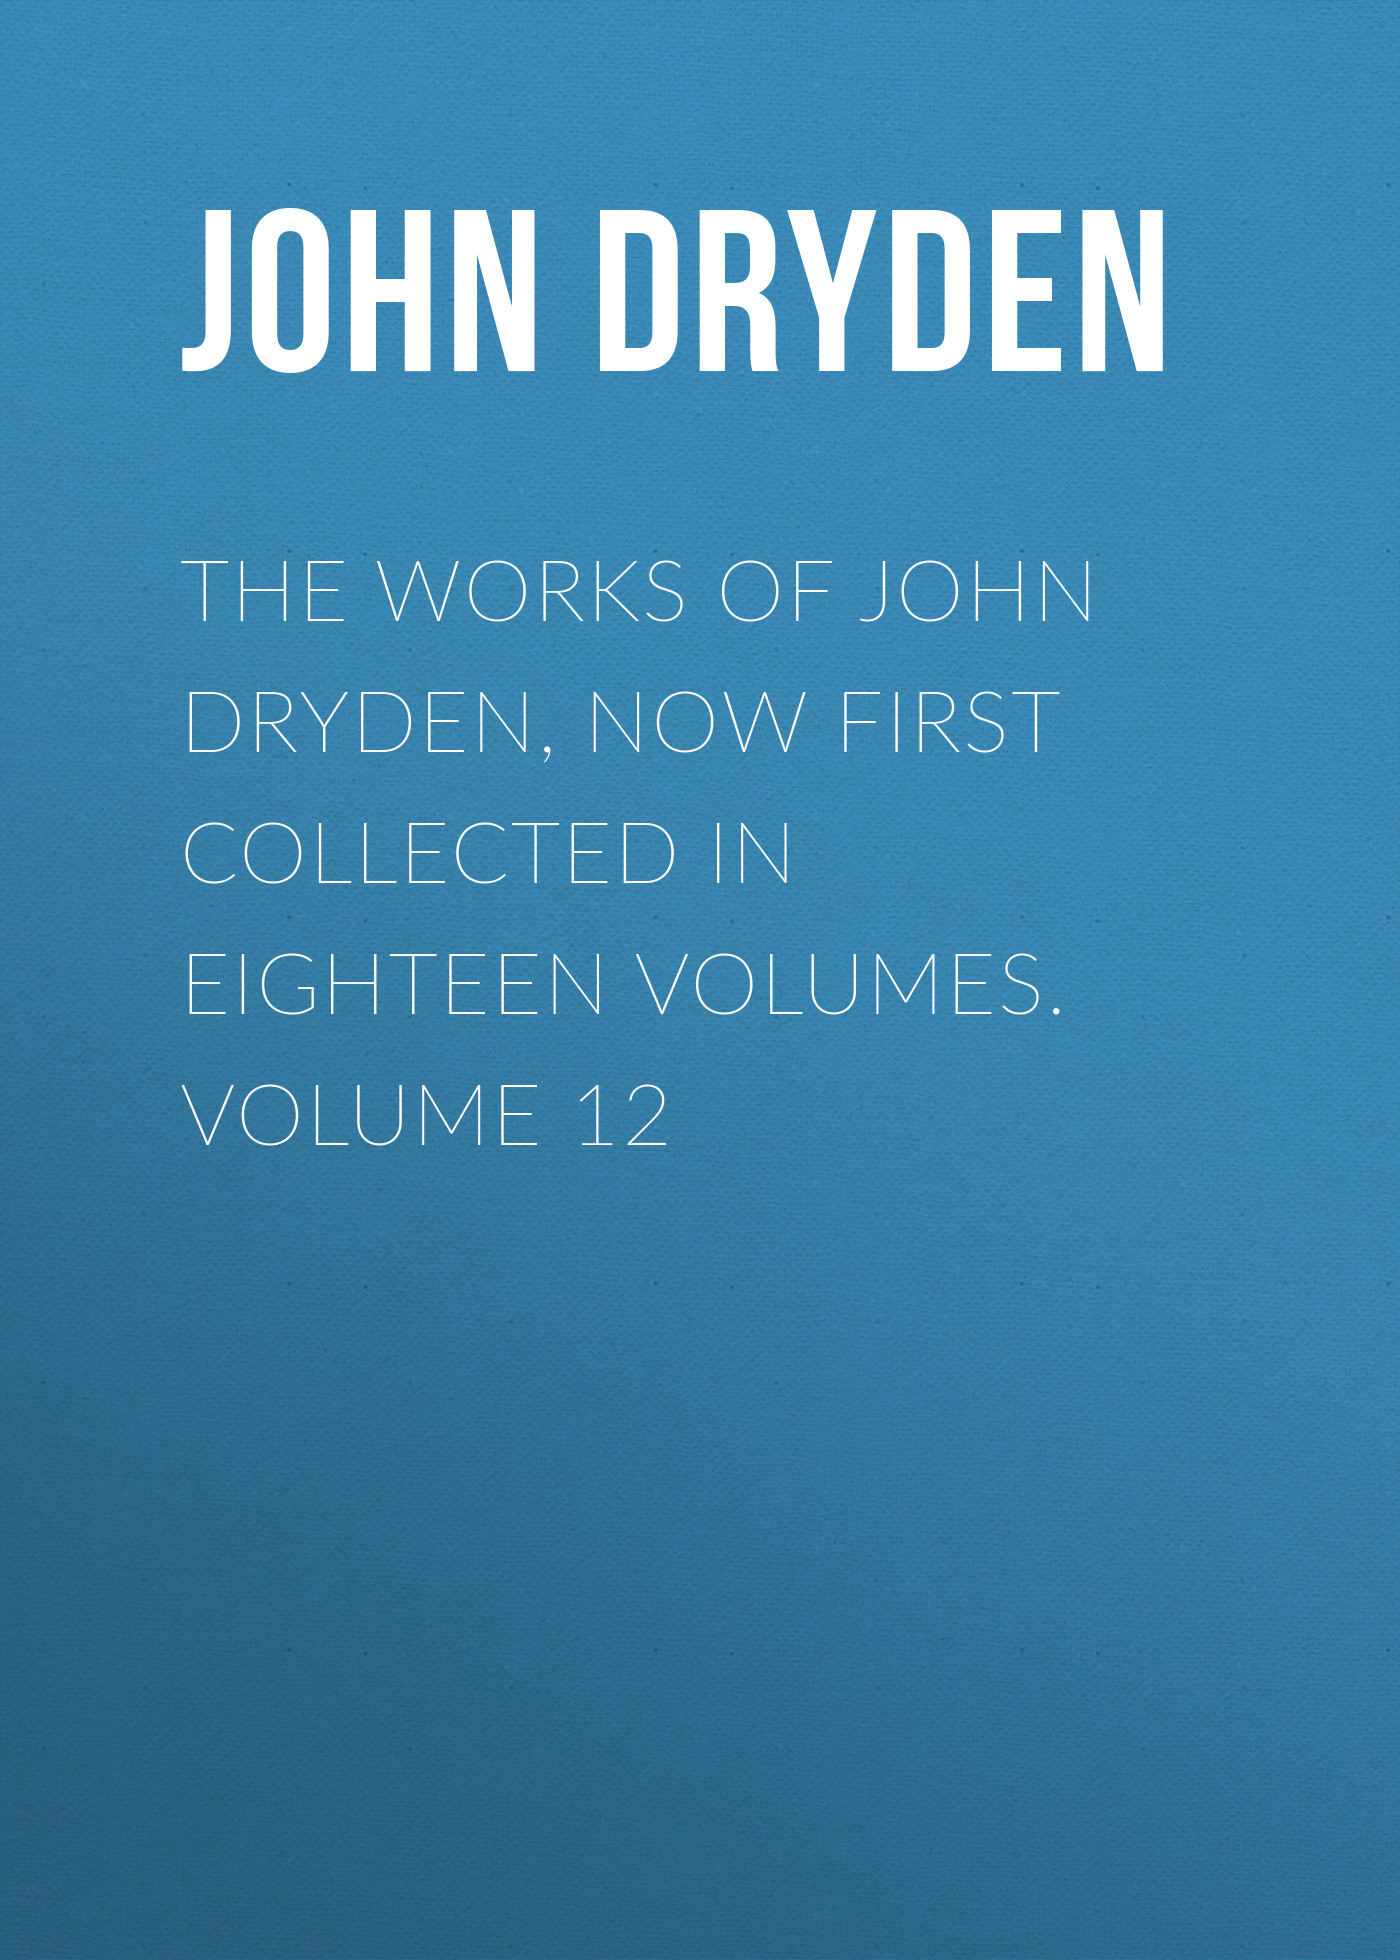 The Works of John Dryden, now first collected in eighteen volumes. Volume 12